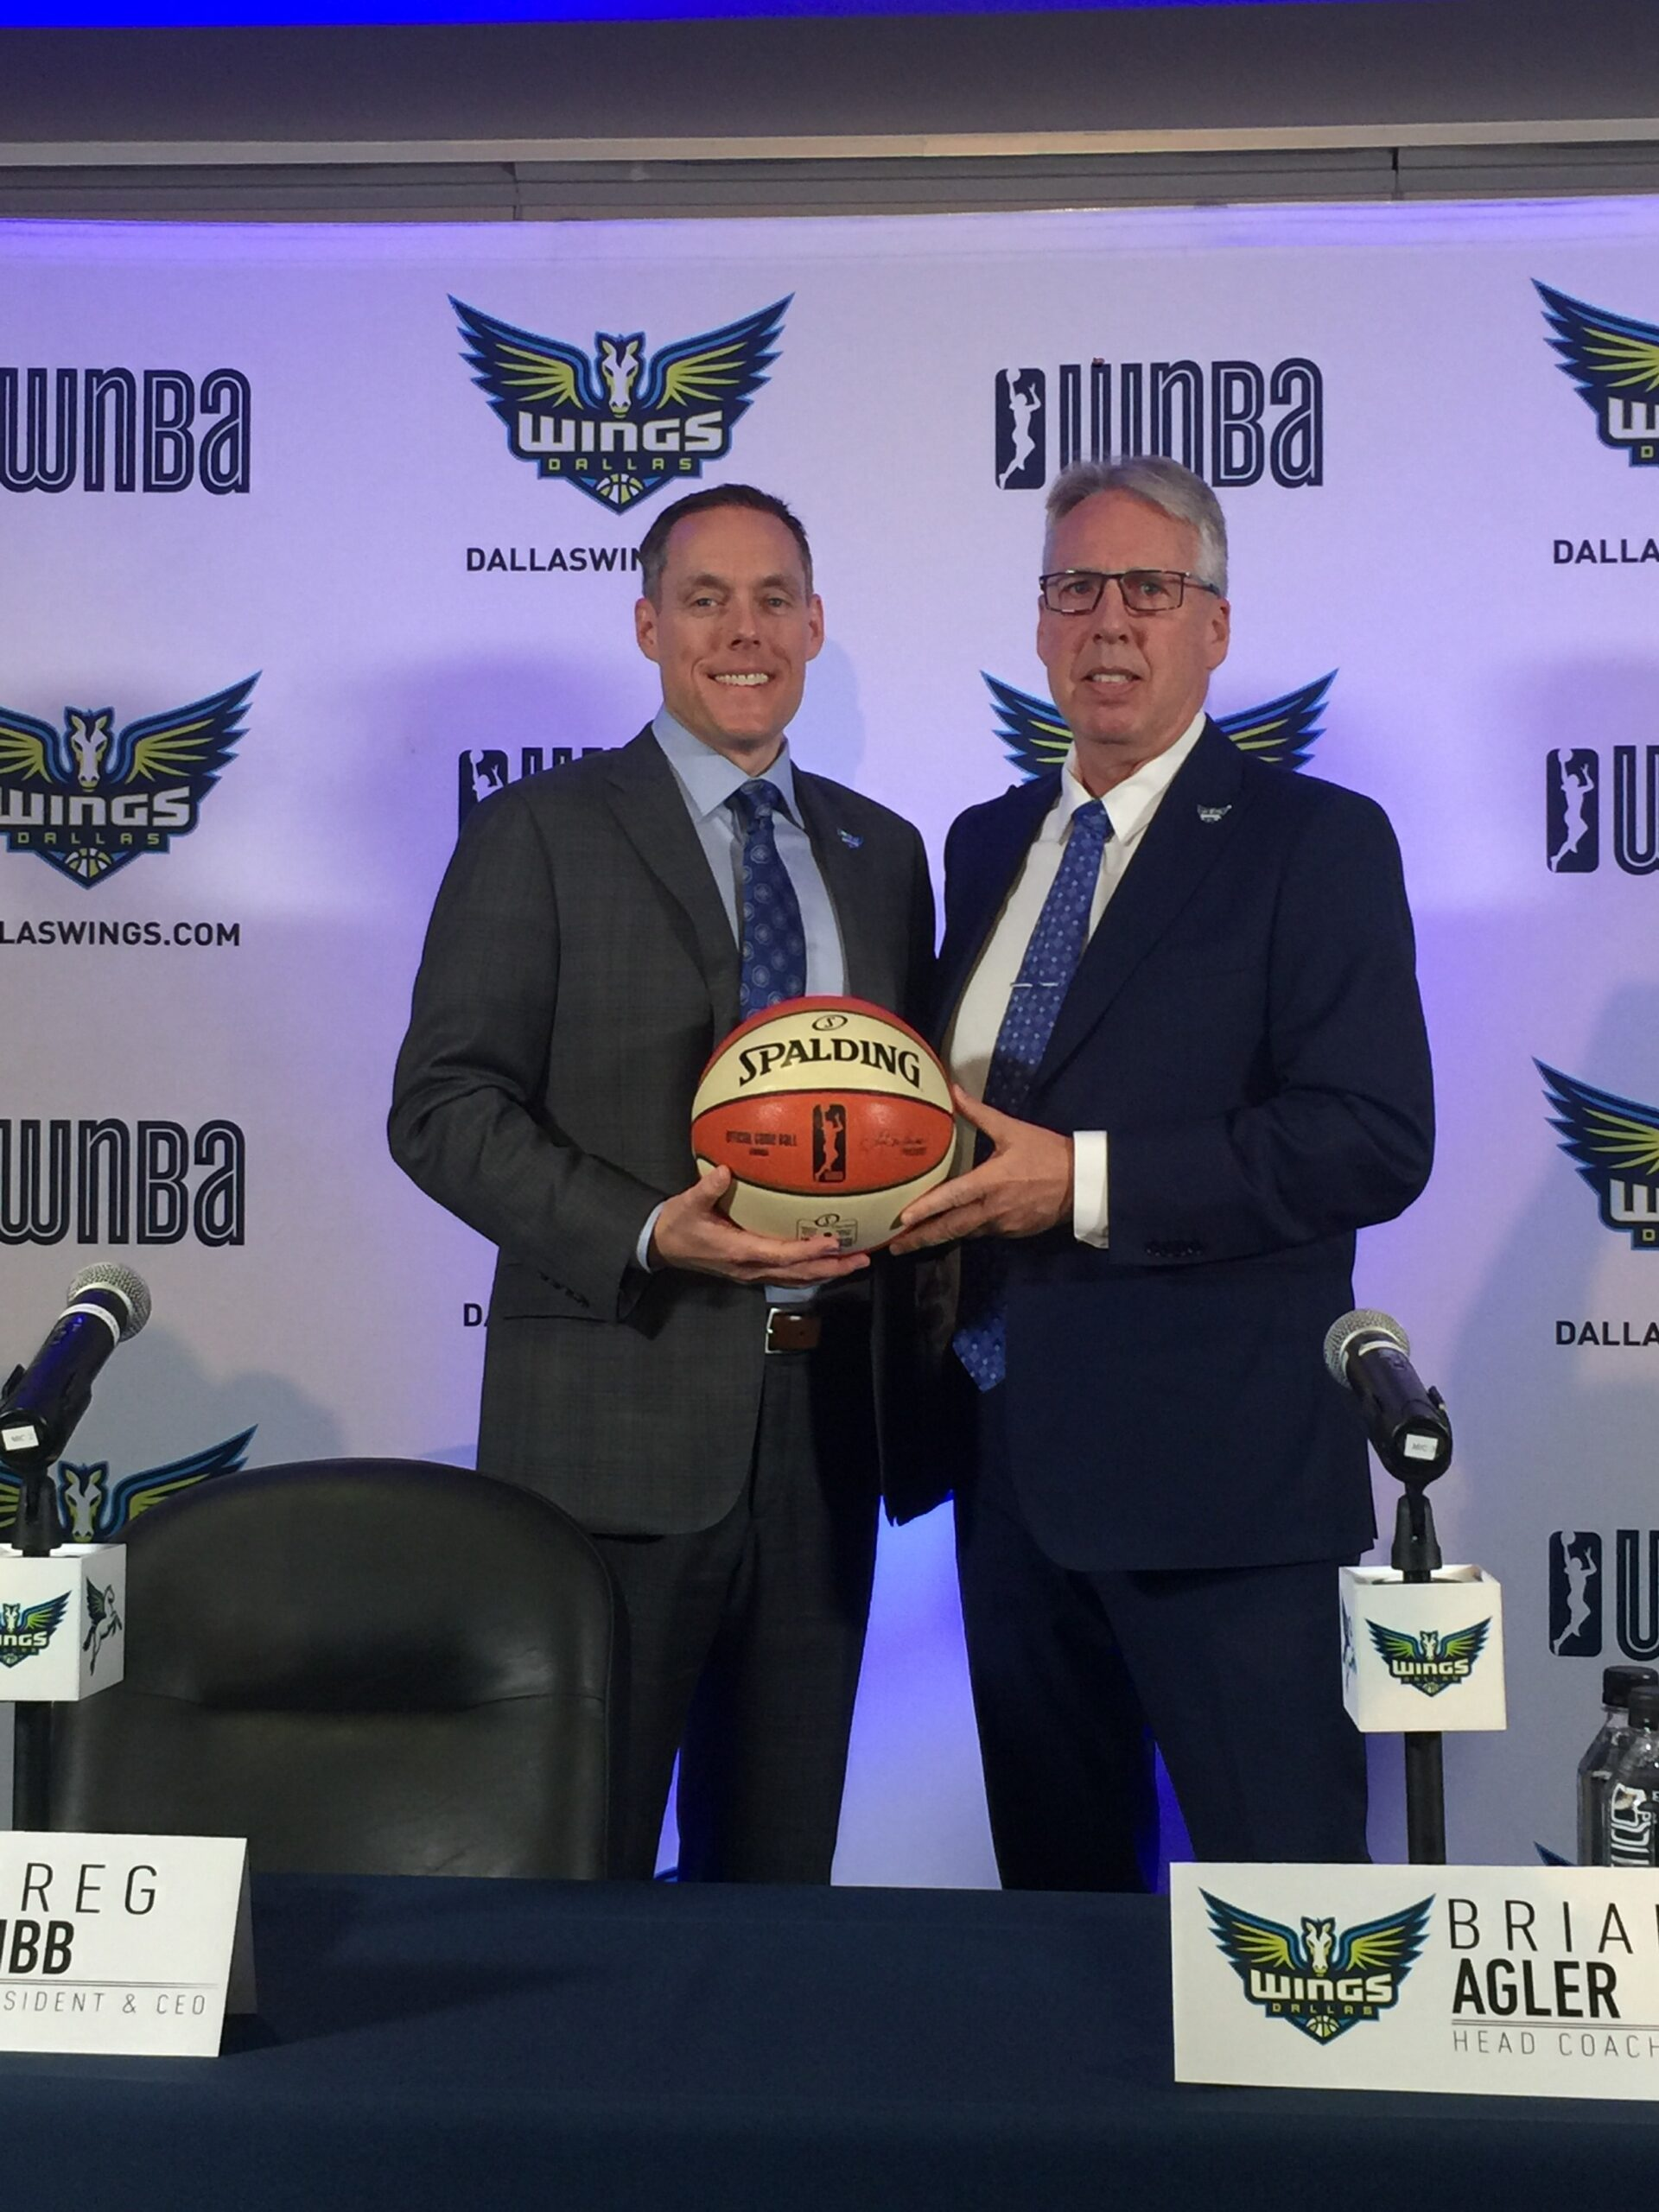 Dallas Wings GM Greg Bibb (left) and Former Head Coach Brian Agler